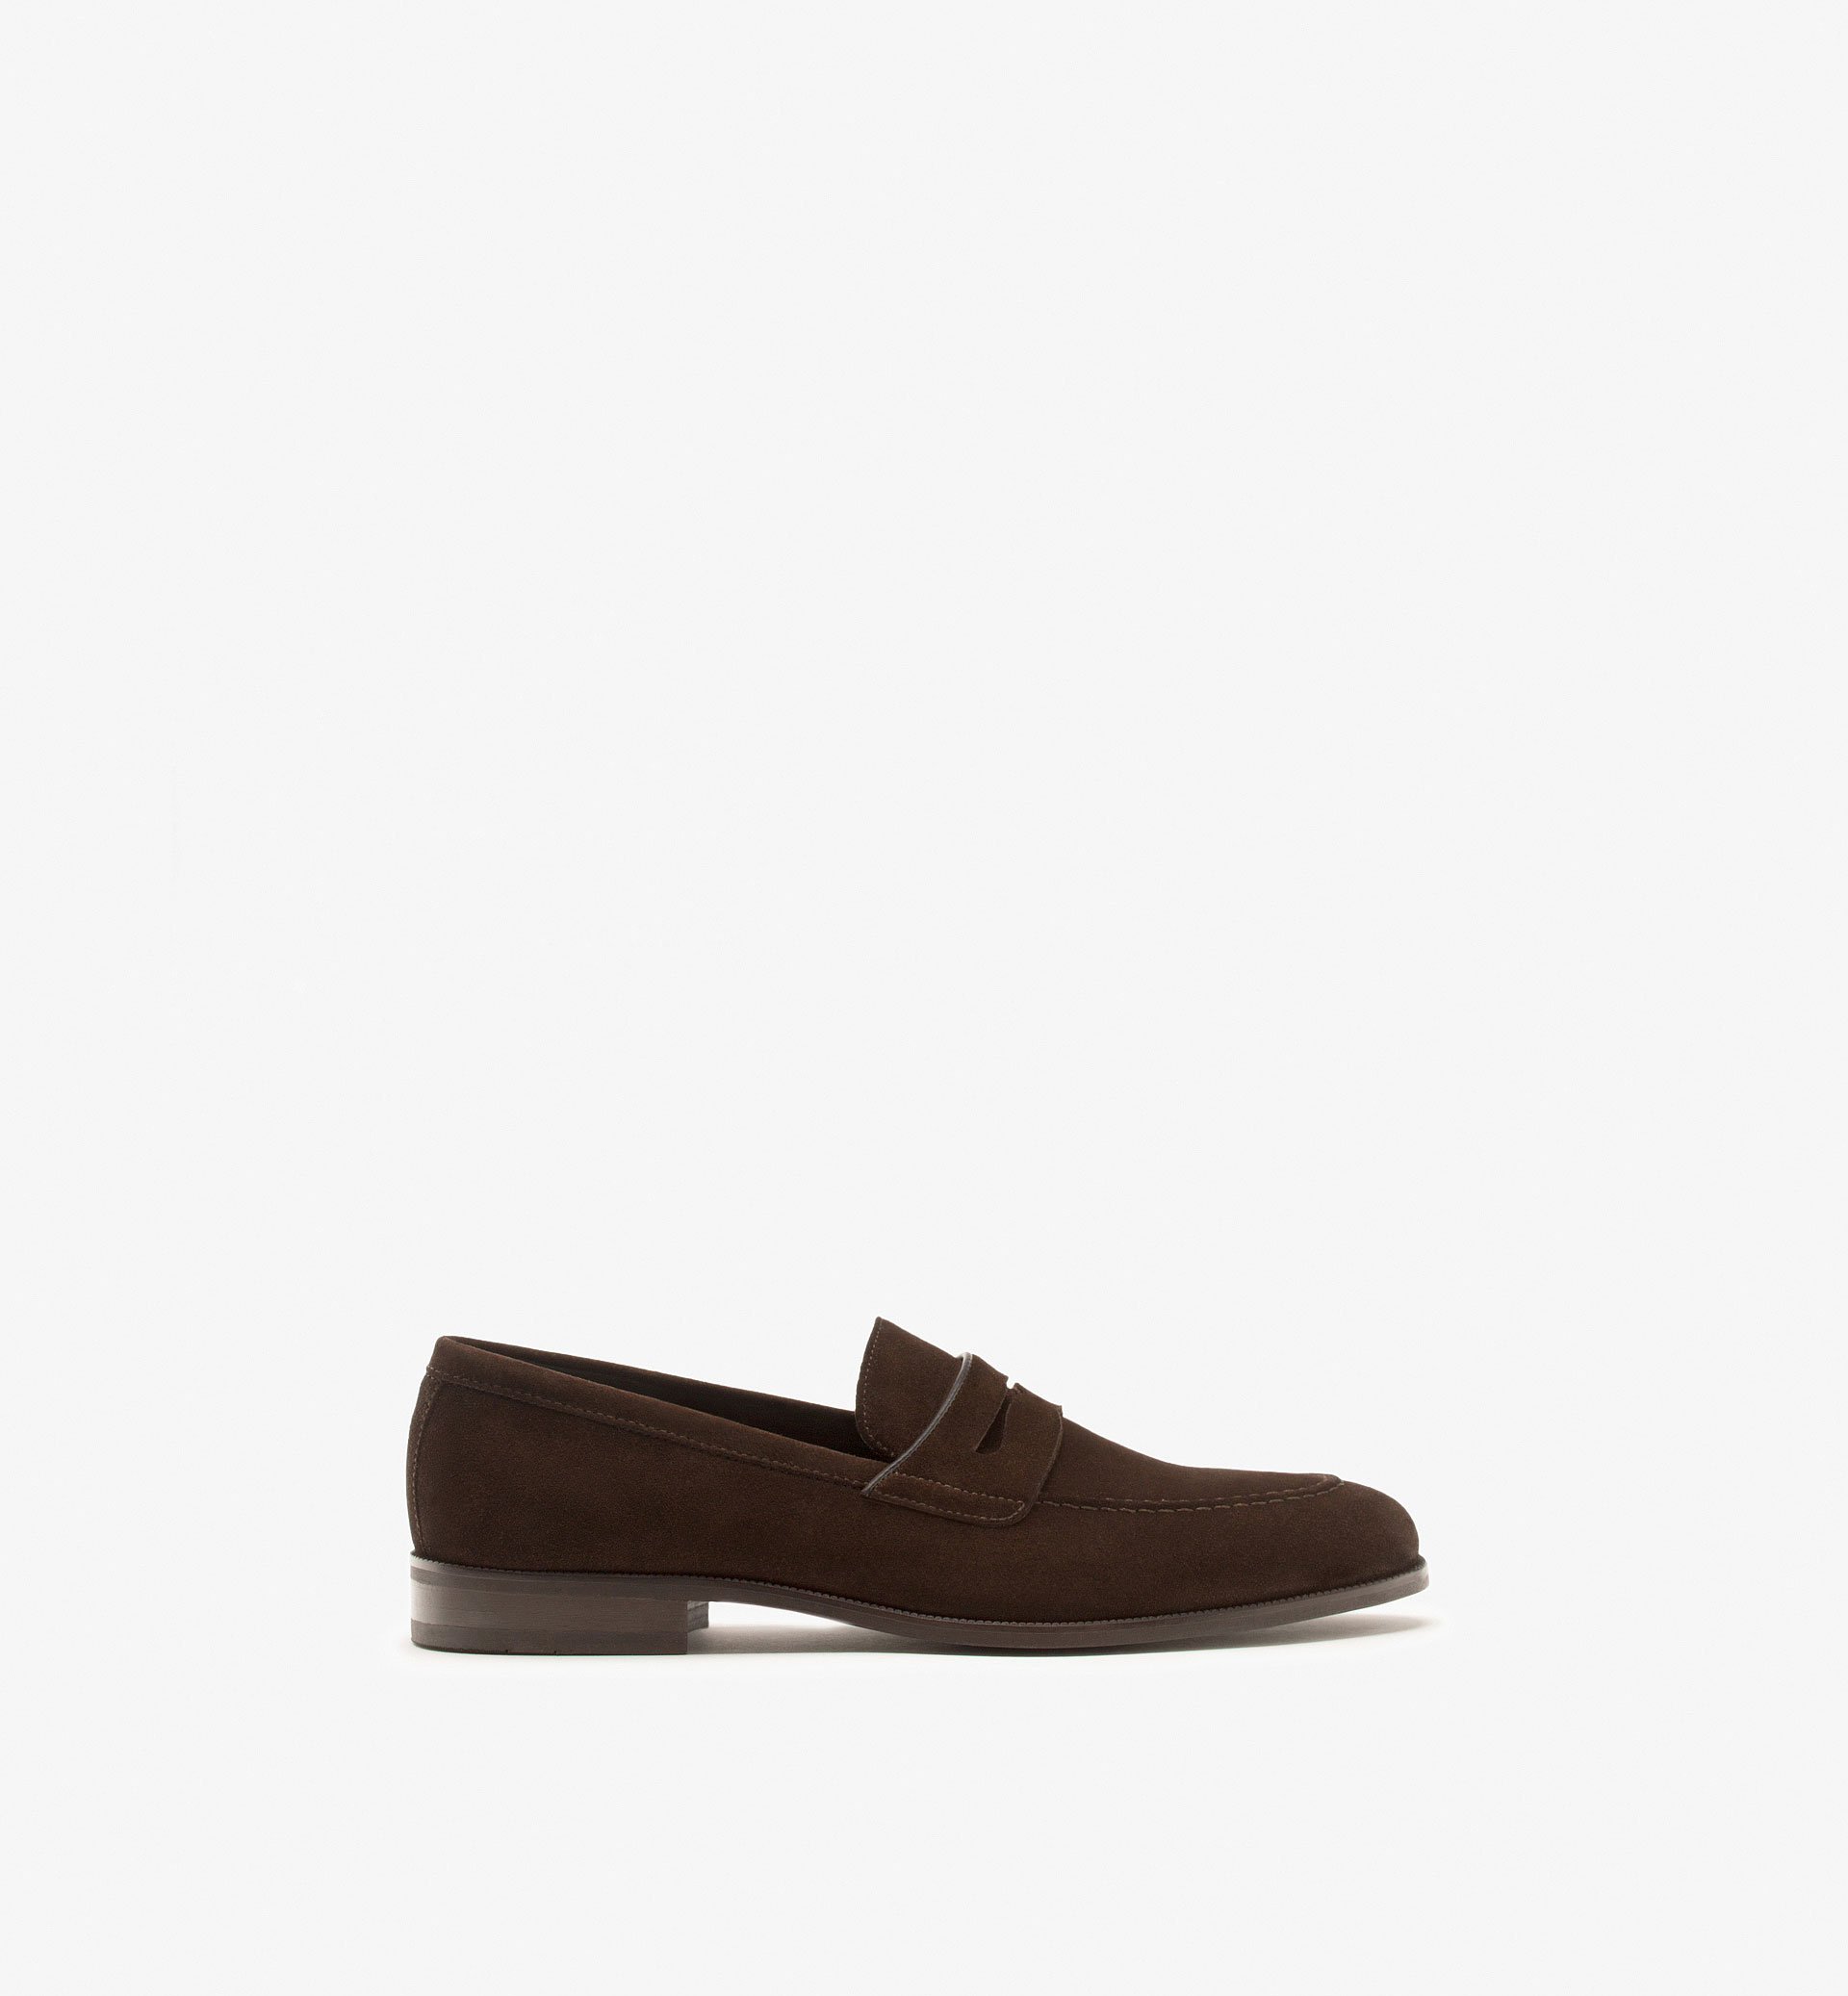 SMART BROWN LOAFERS